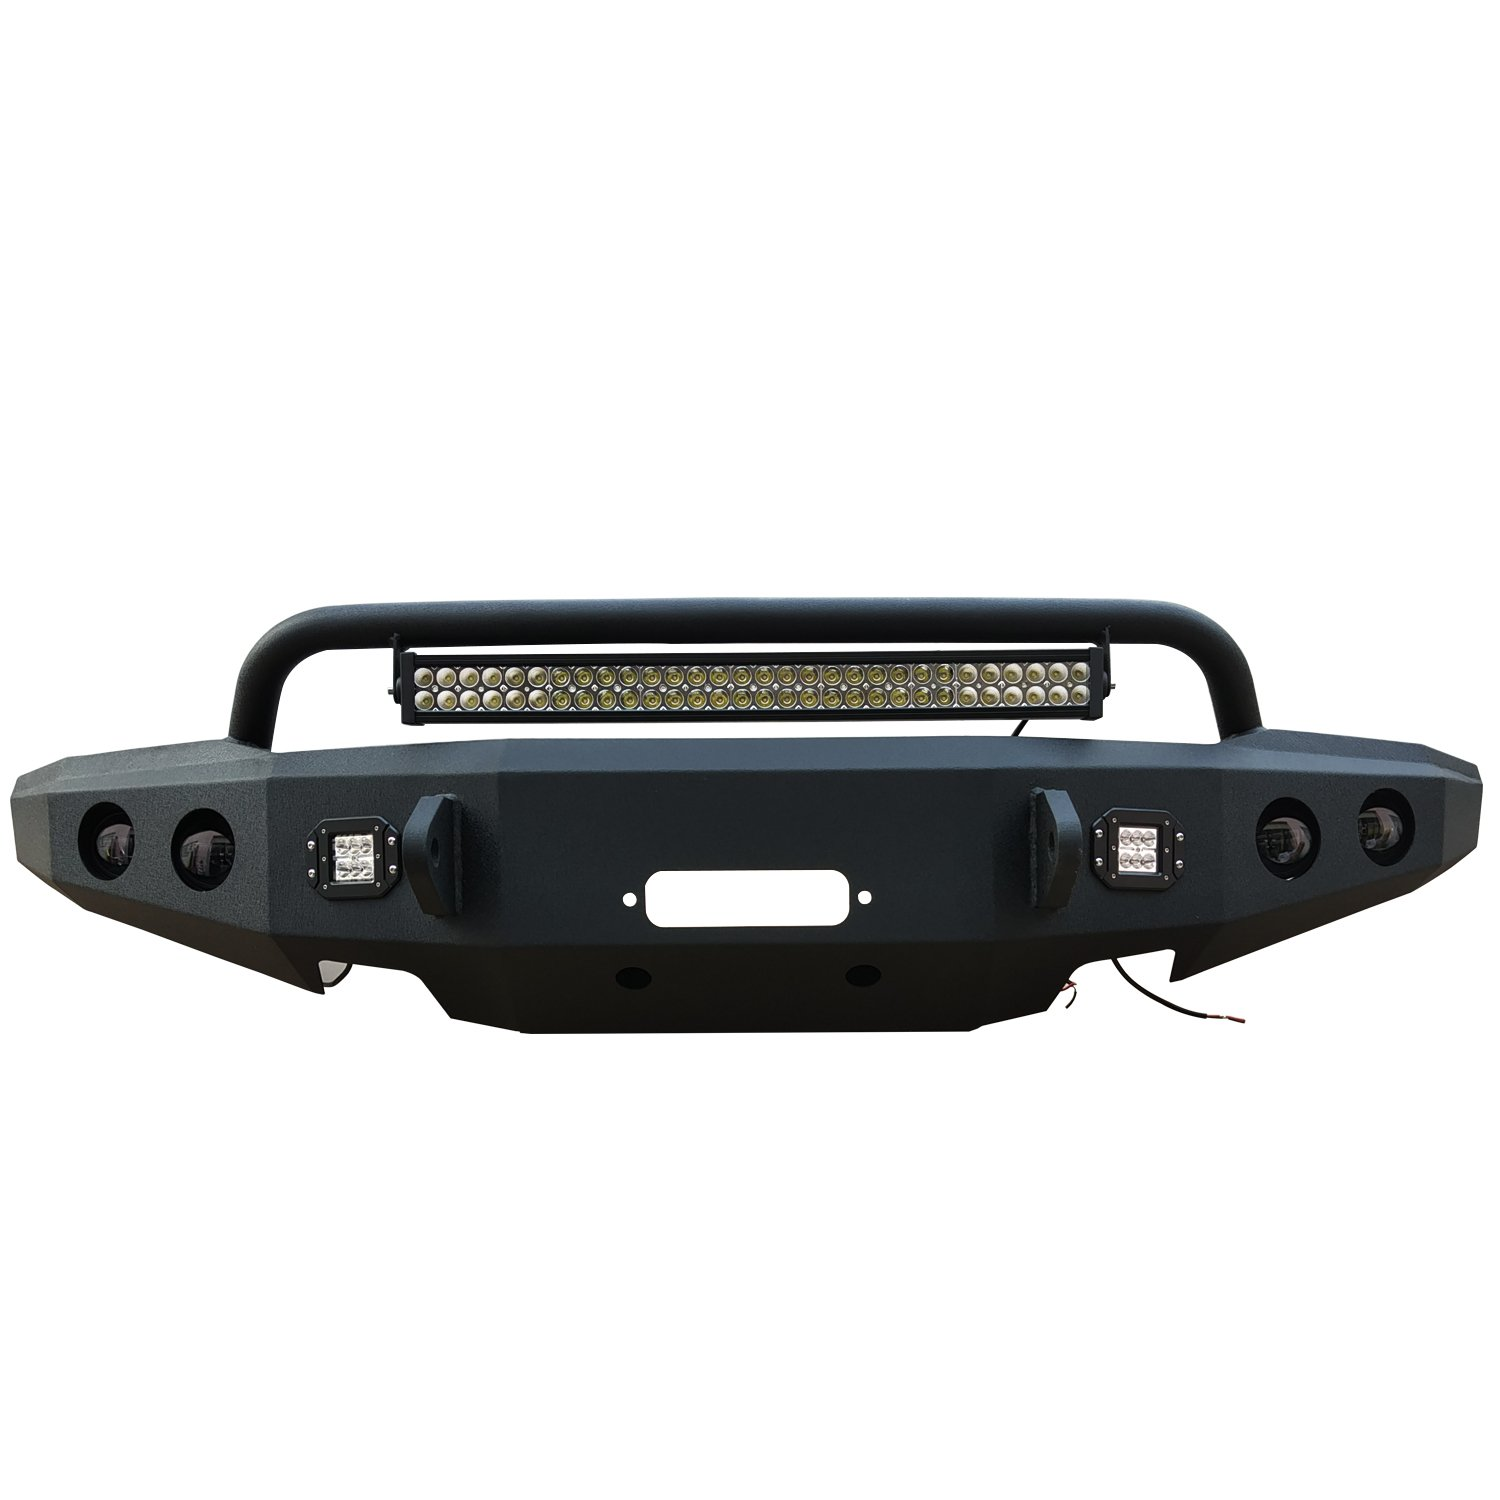 2015-2017 Ford F150 Front Bumper Full-Width w/ Winch Mount & 2 x D-rings & Lights for Ford F150